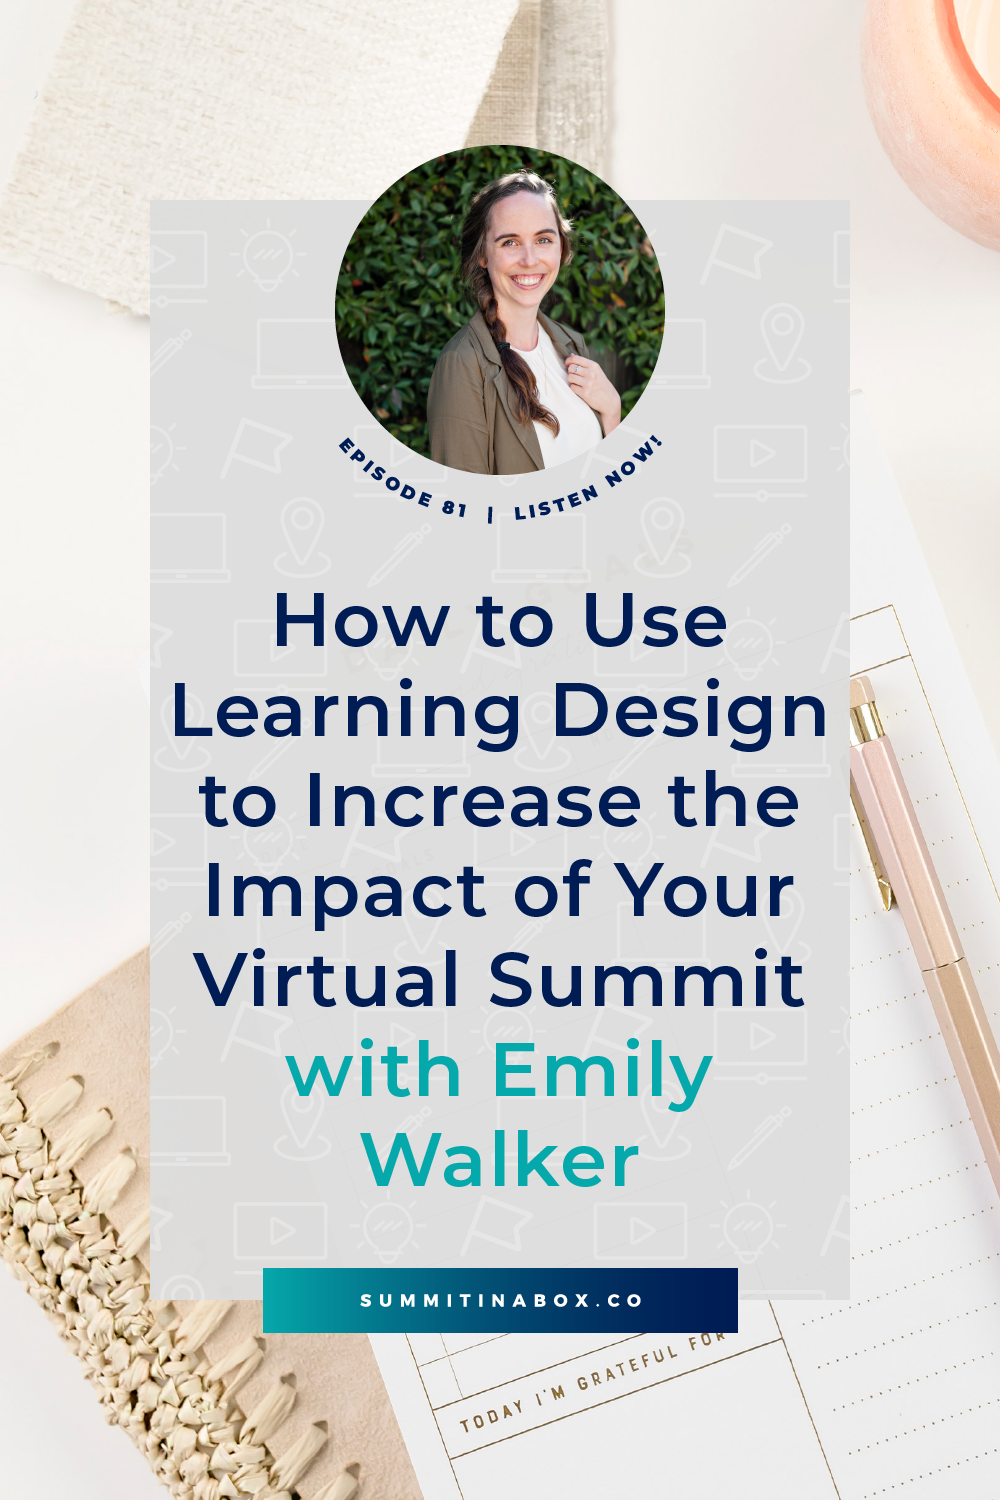 Did you know that most virtual summit presentations are too long and don't give attendees what they need? Use learning design to host a more impactful event!